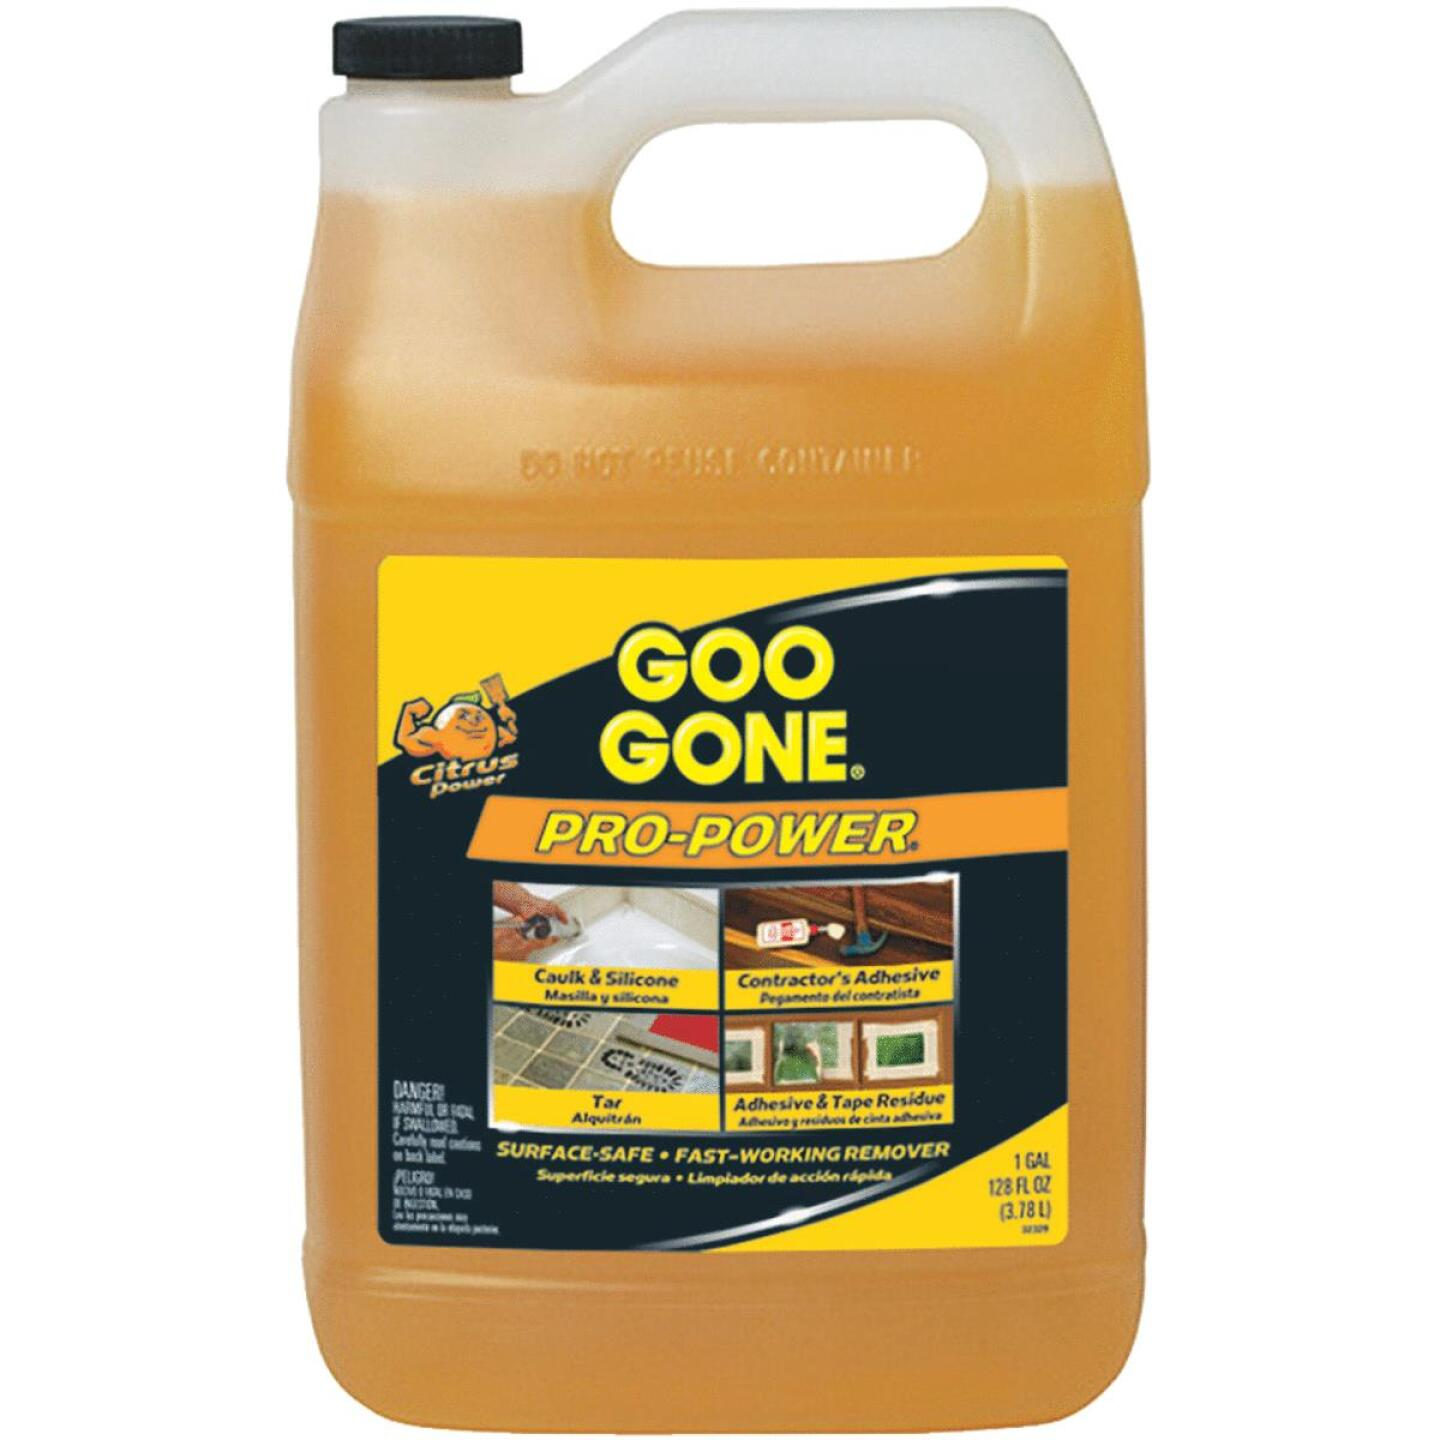 Goo Gone 1 Gal. Pro-Power Adhesive Remover Image 133